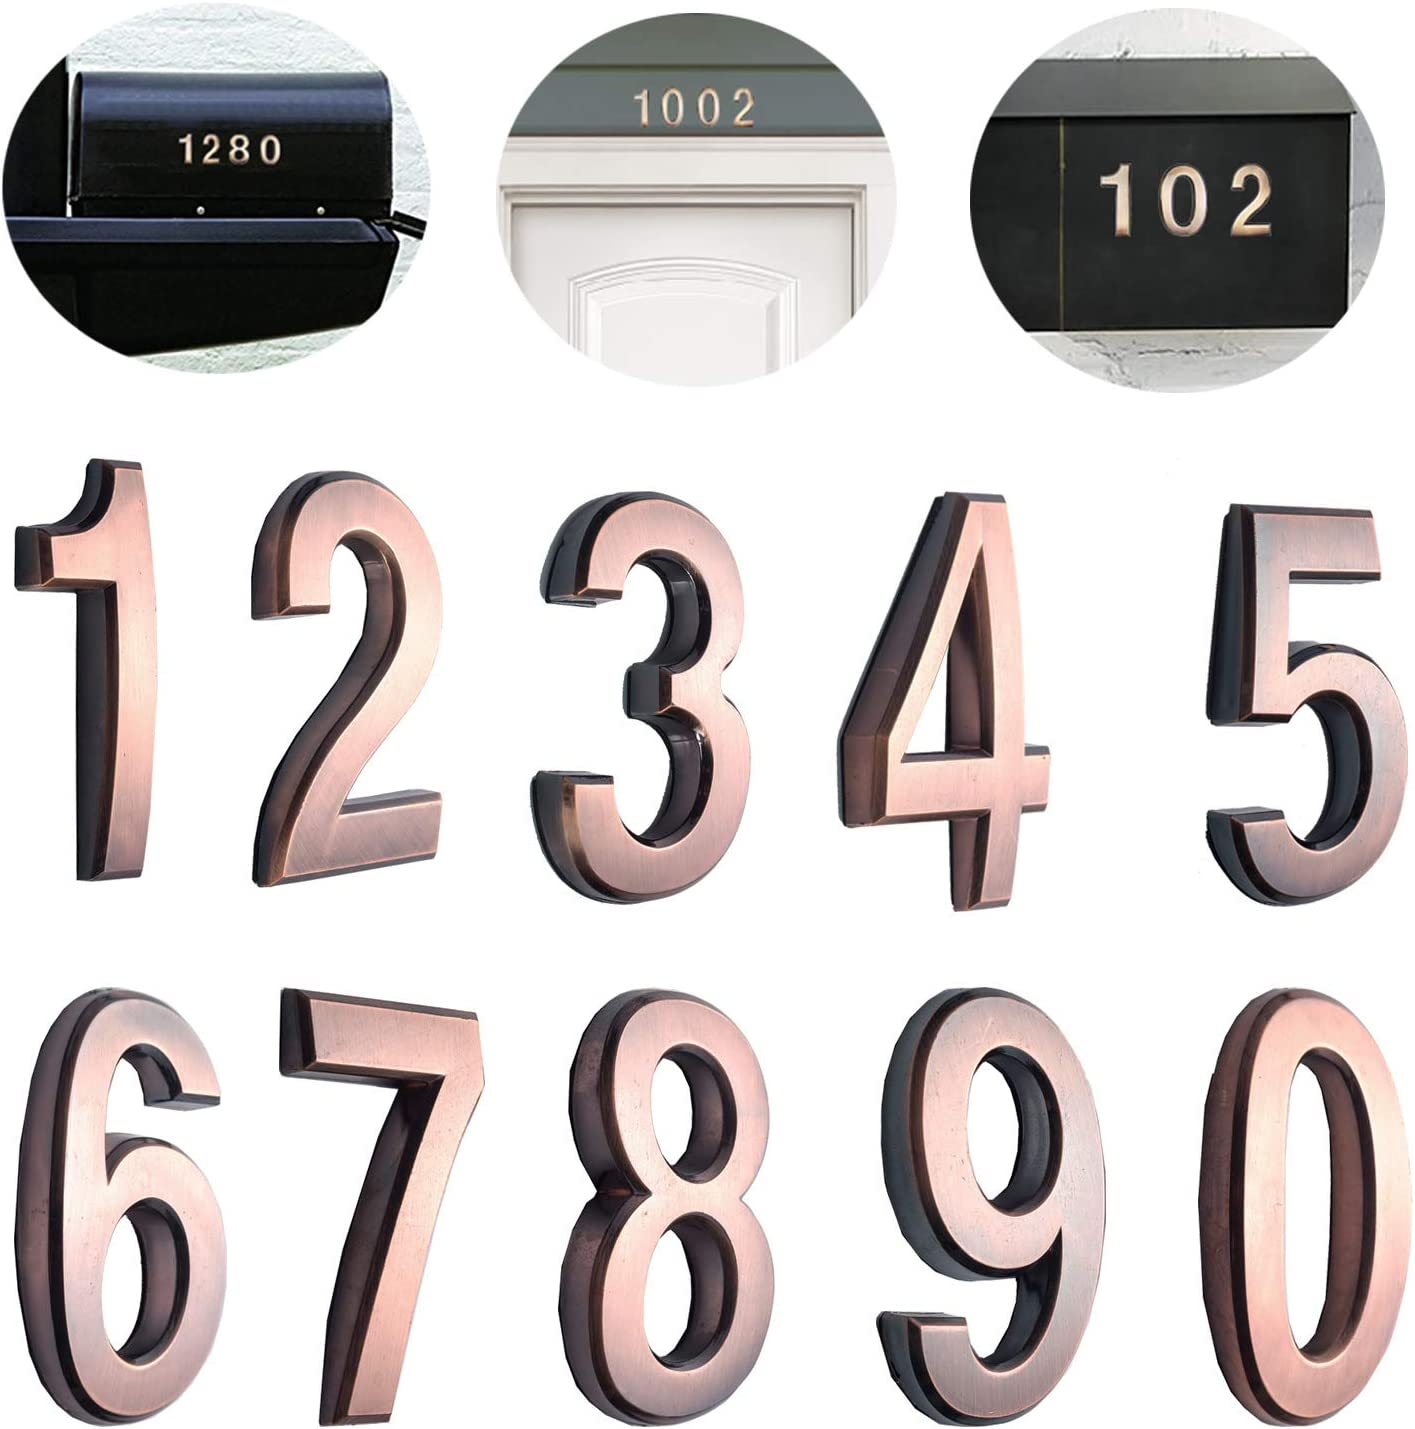 """10 Pack 2-3/4""""(Pack 0 to 9, Bronze) self Adhesive Door House Numbers and Street Address Plaques Numbers for Residence and Mailbox Signs. (2-3/4"""" 10 Pack (0-9), Bronze)"""